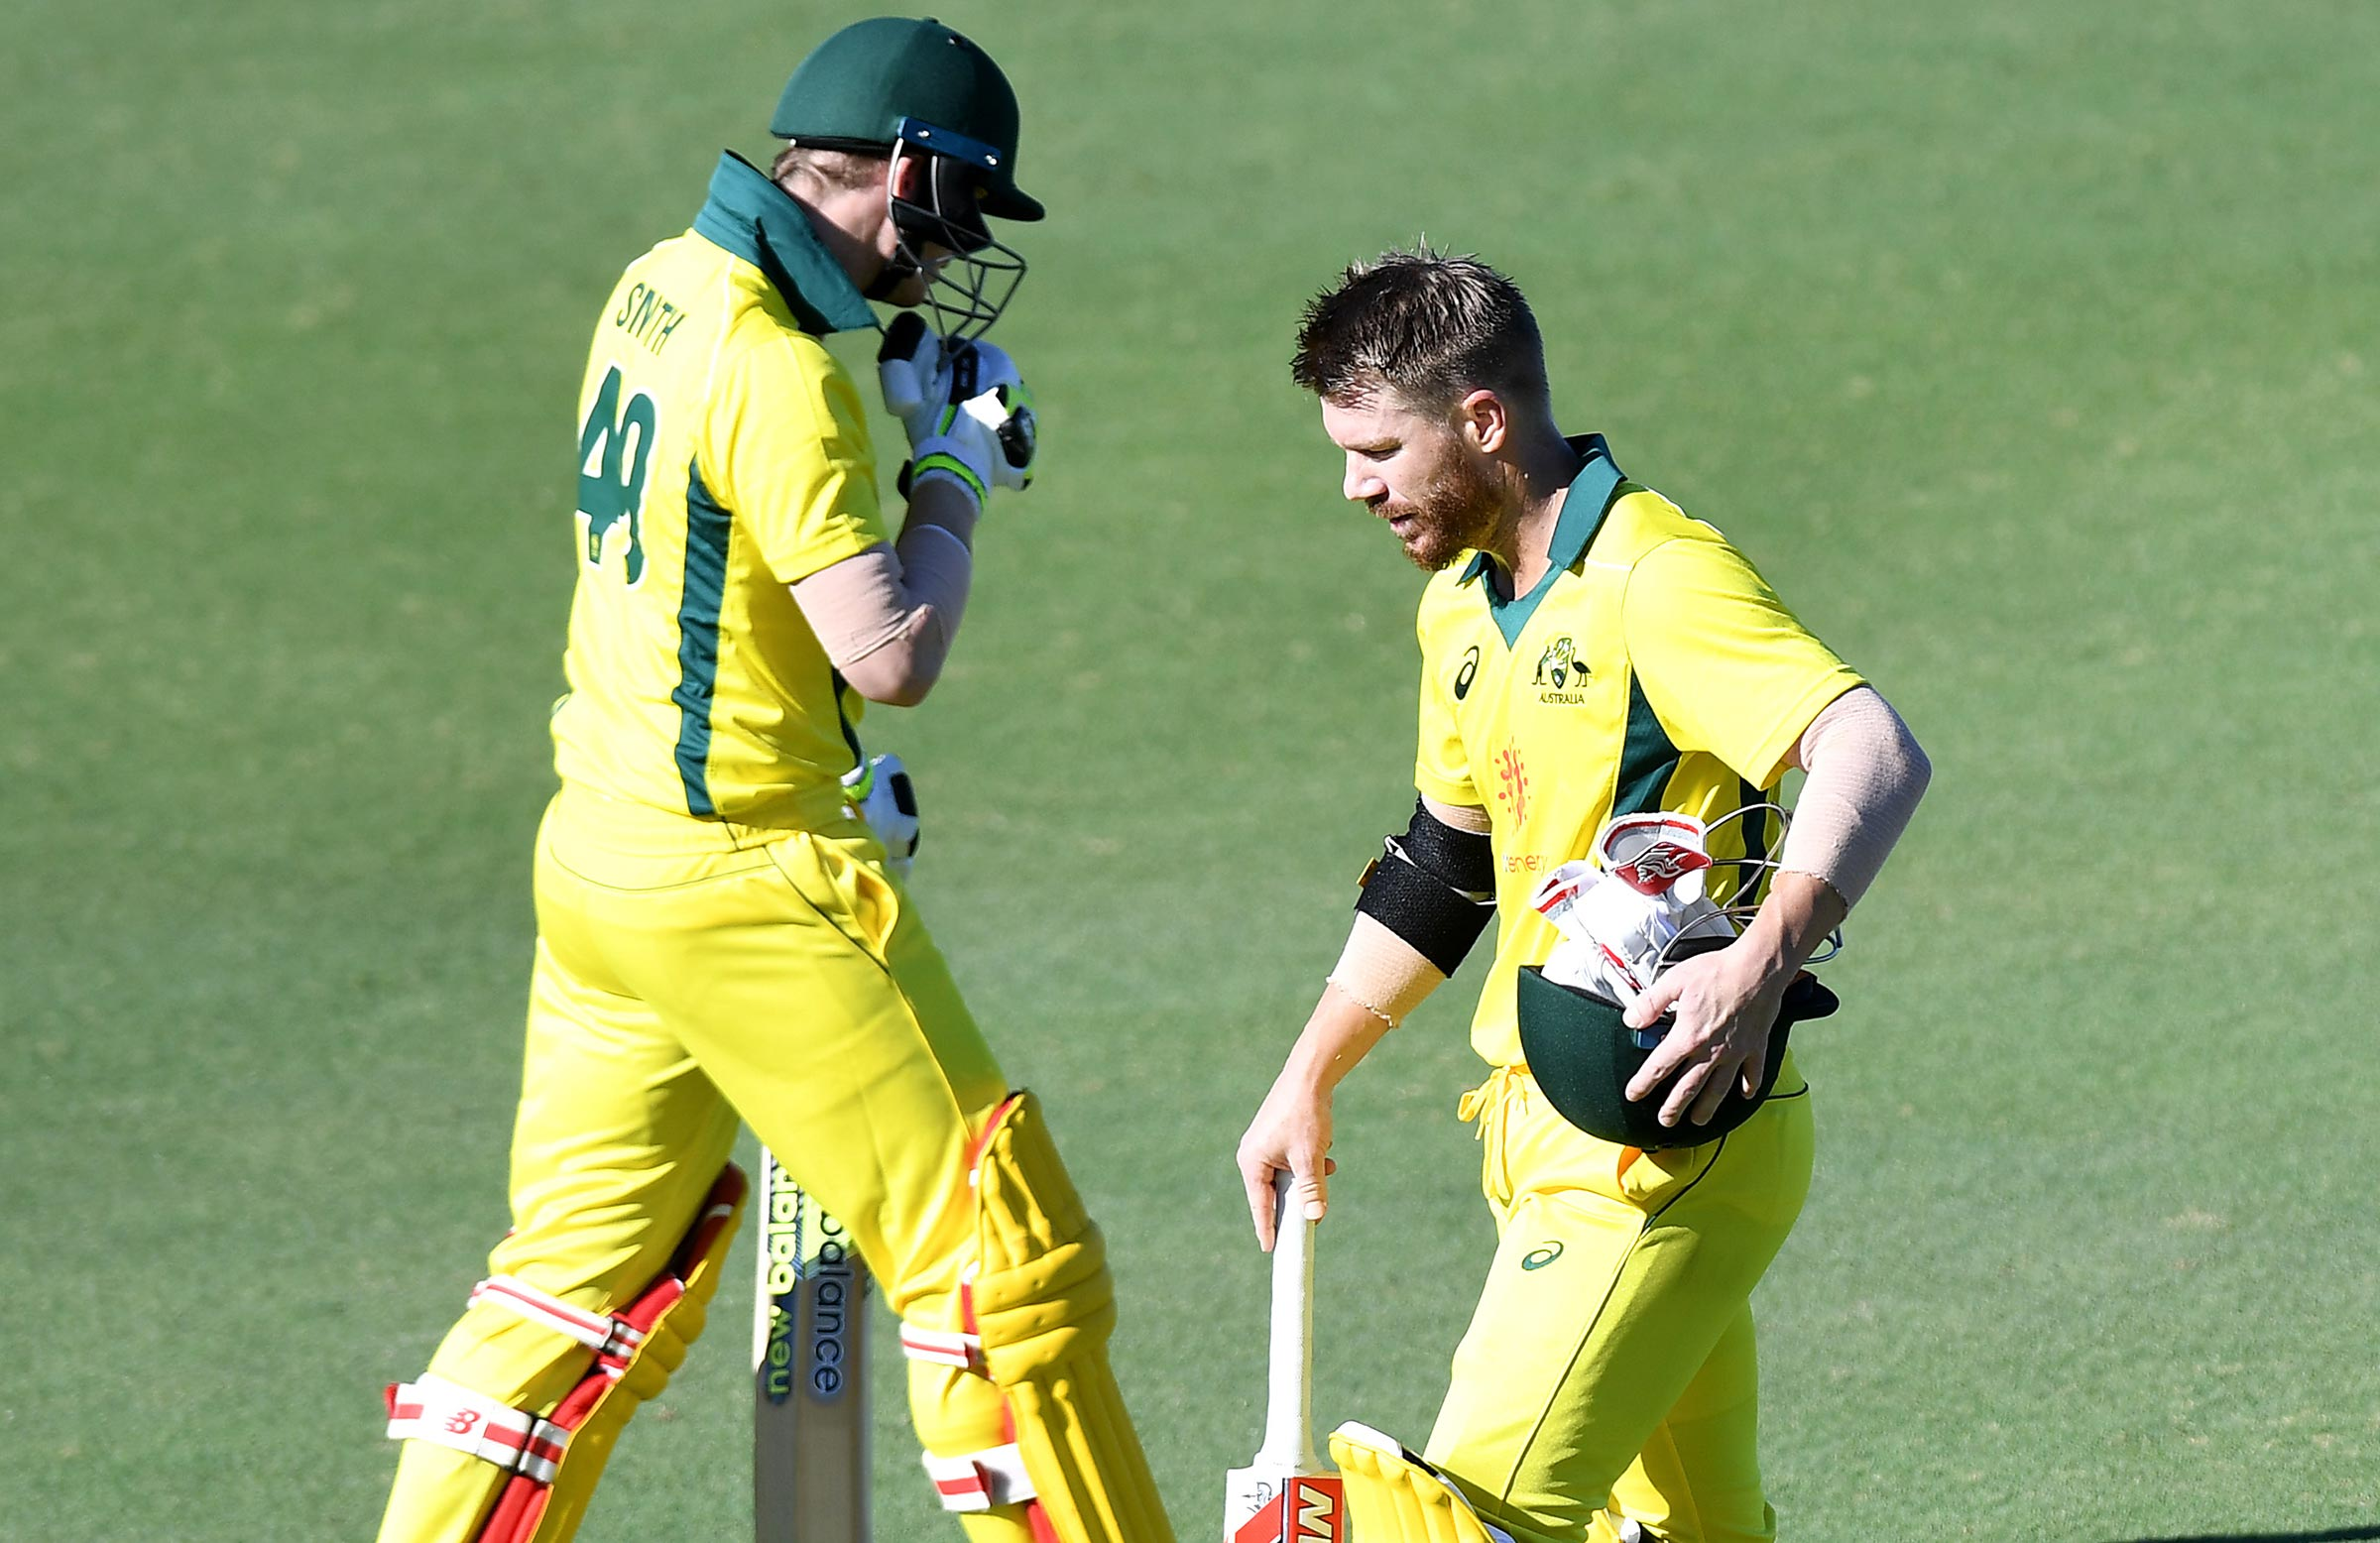 Warner and Smith cross paths at AB Field // Getty